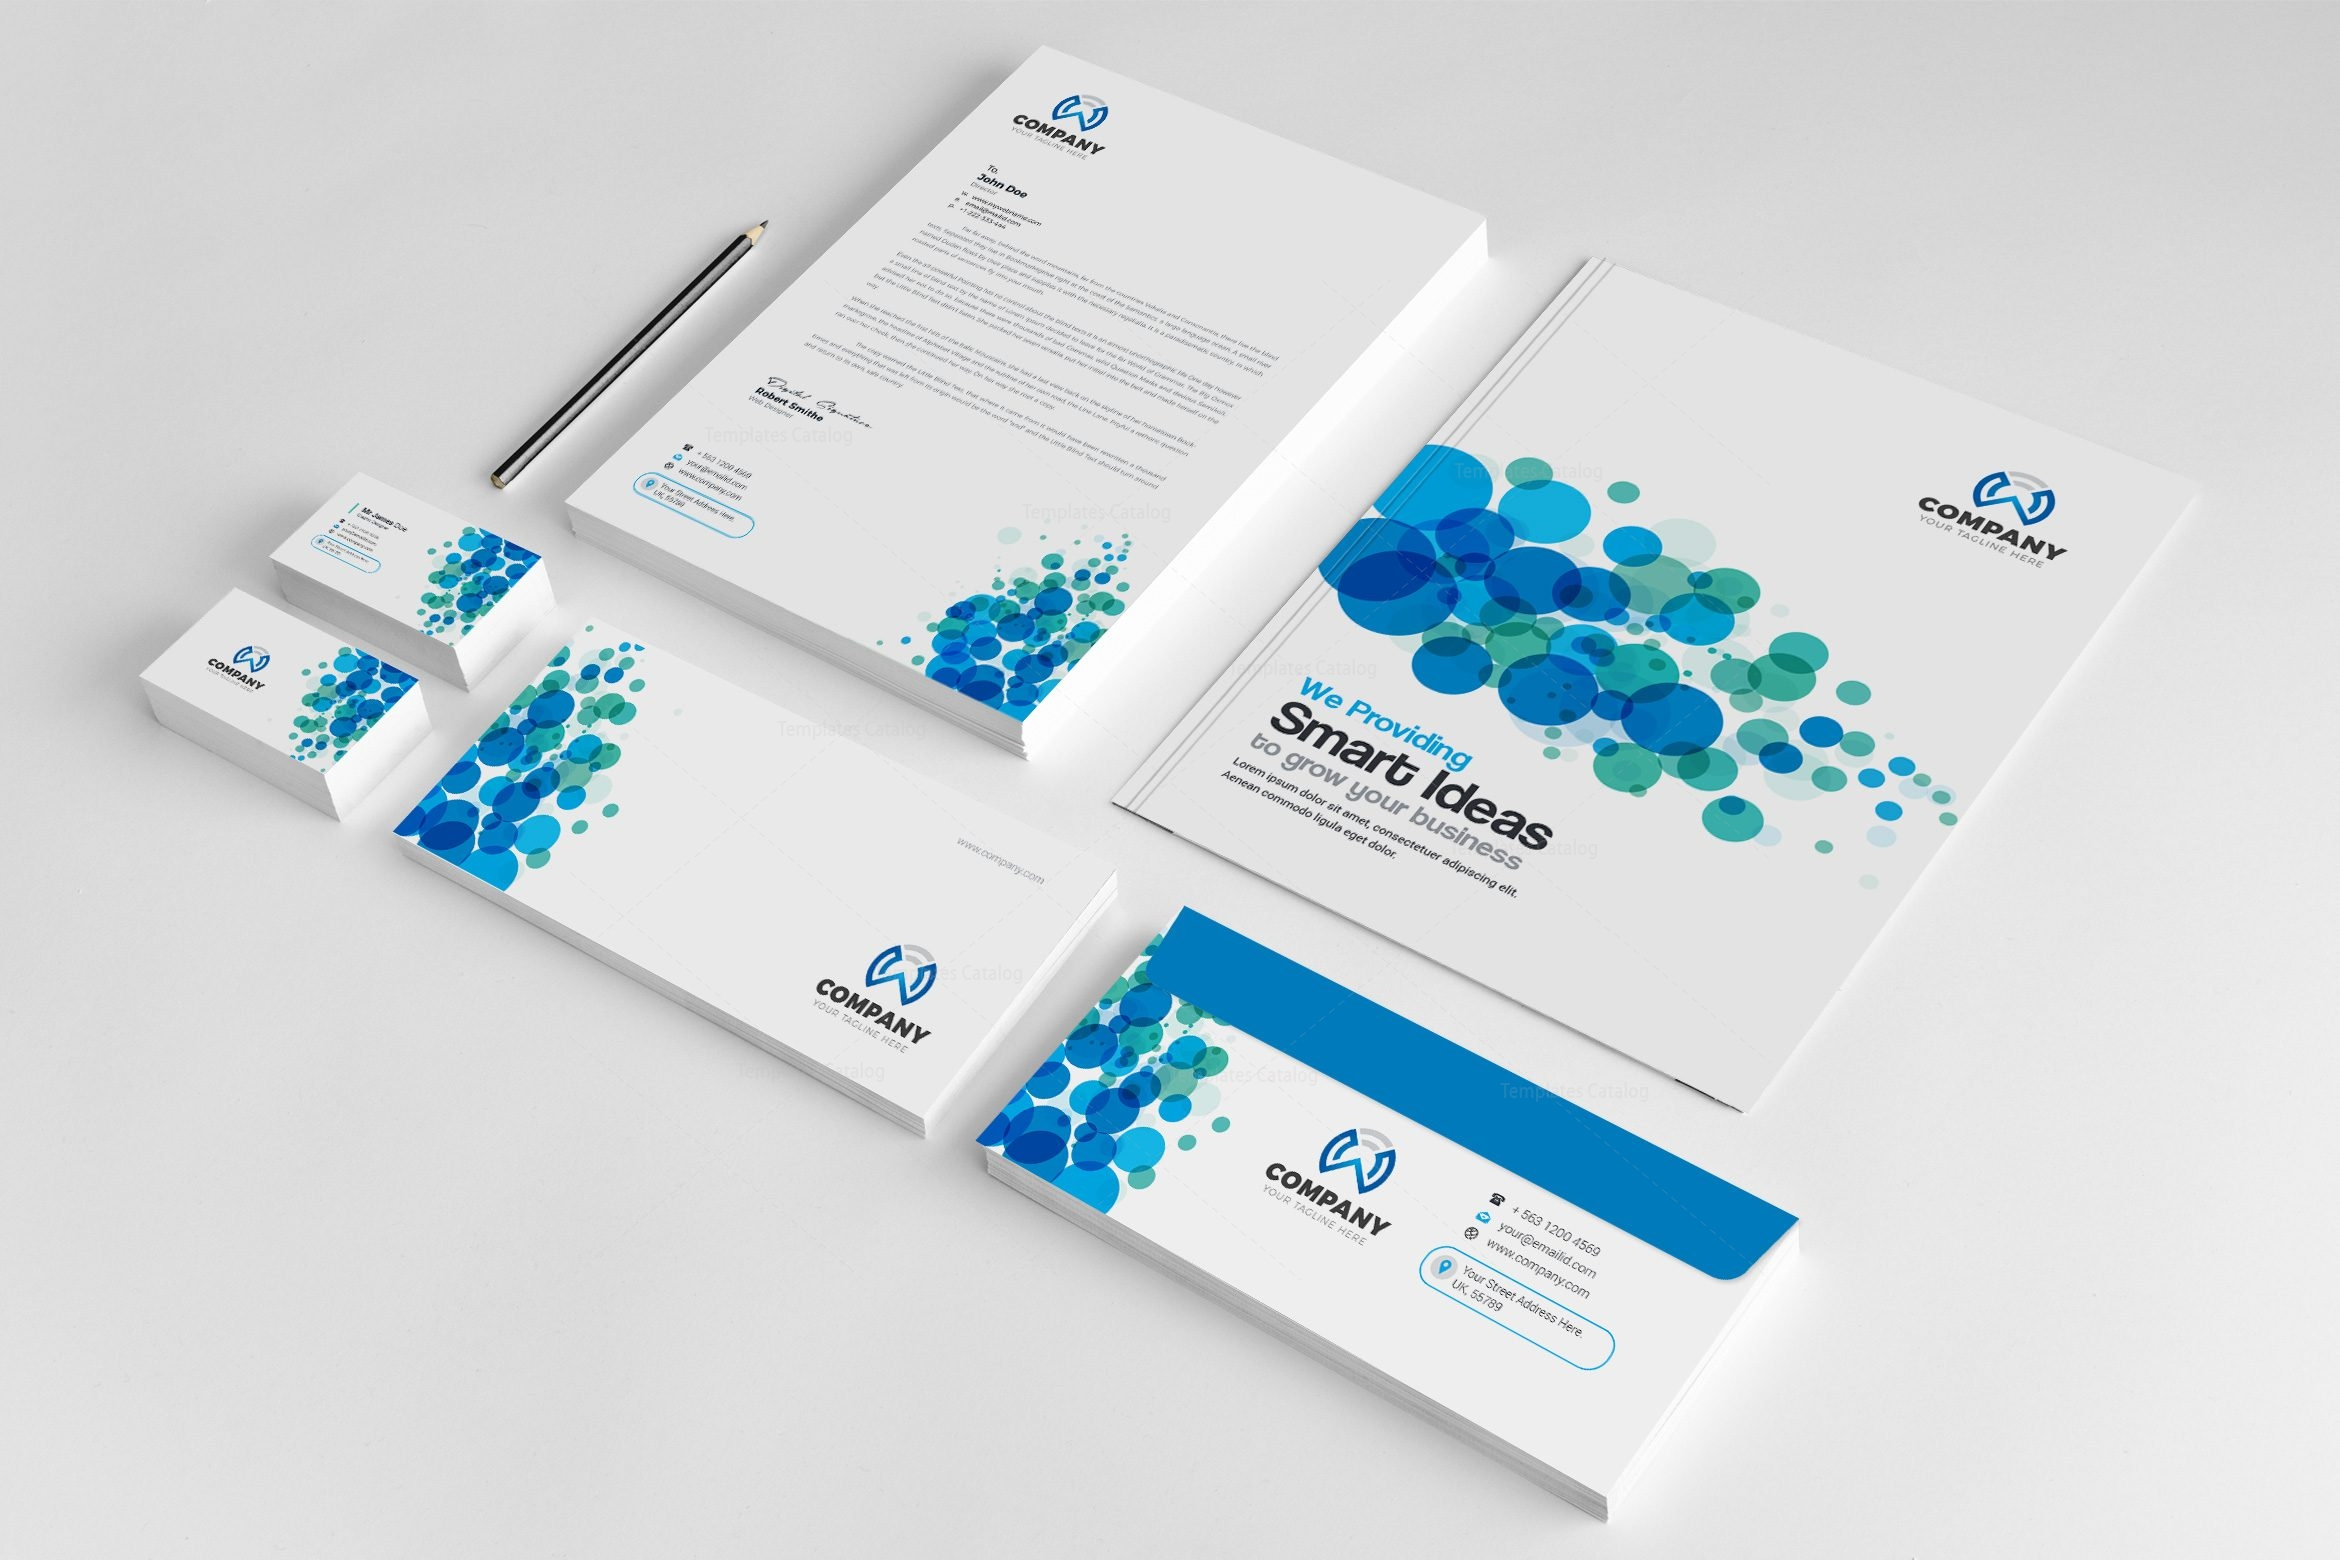 Corporate Graphic Design Dots Corporate Identity Pack Design Template 002201